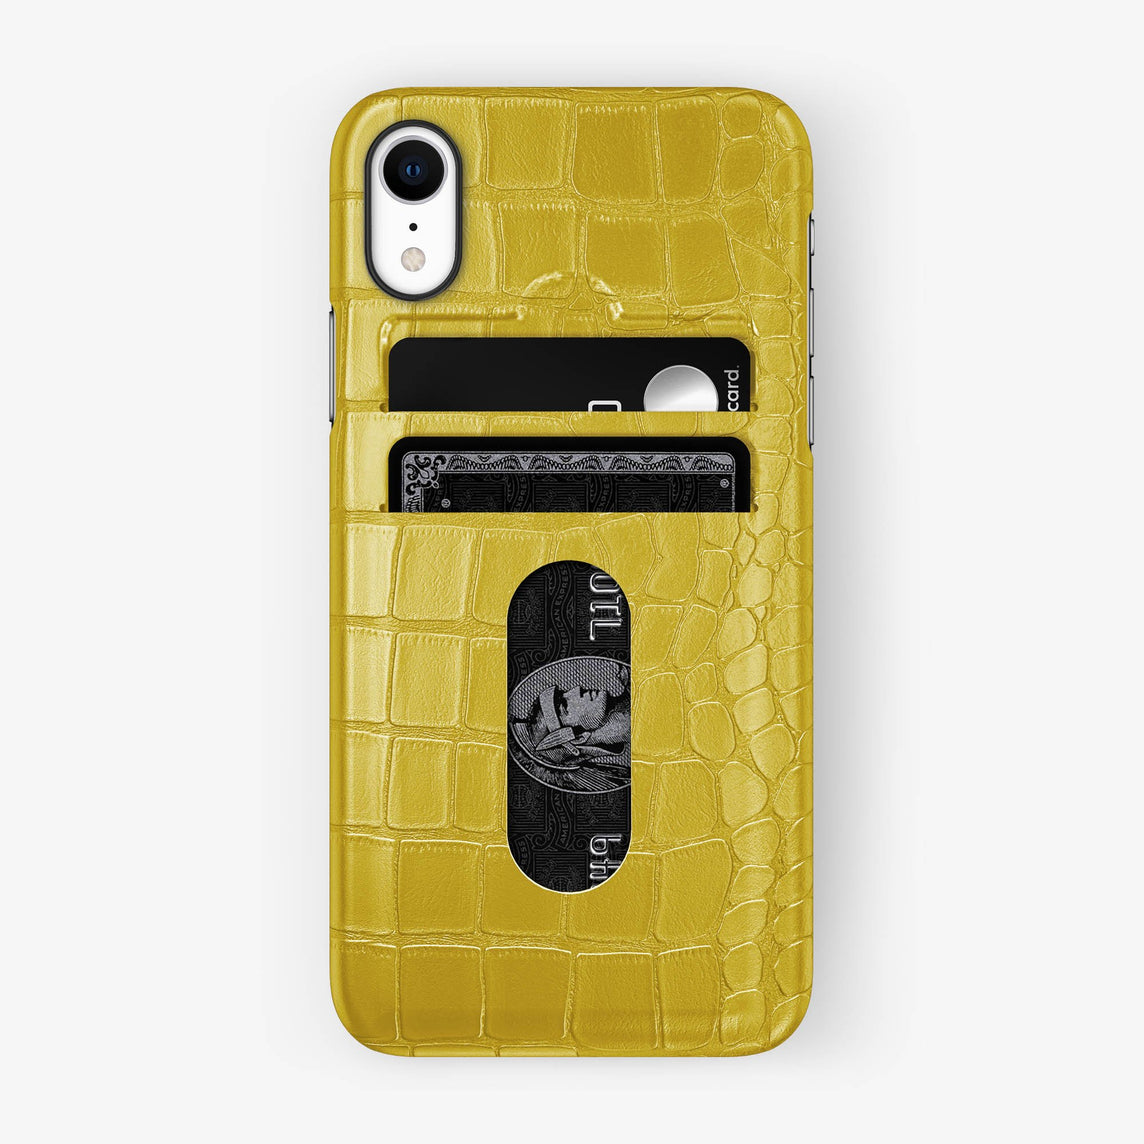 Alligator [iPhone Card Holder Case] [model:iphone-xr-case] [colour:yellow] [finishing:black]